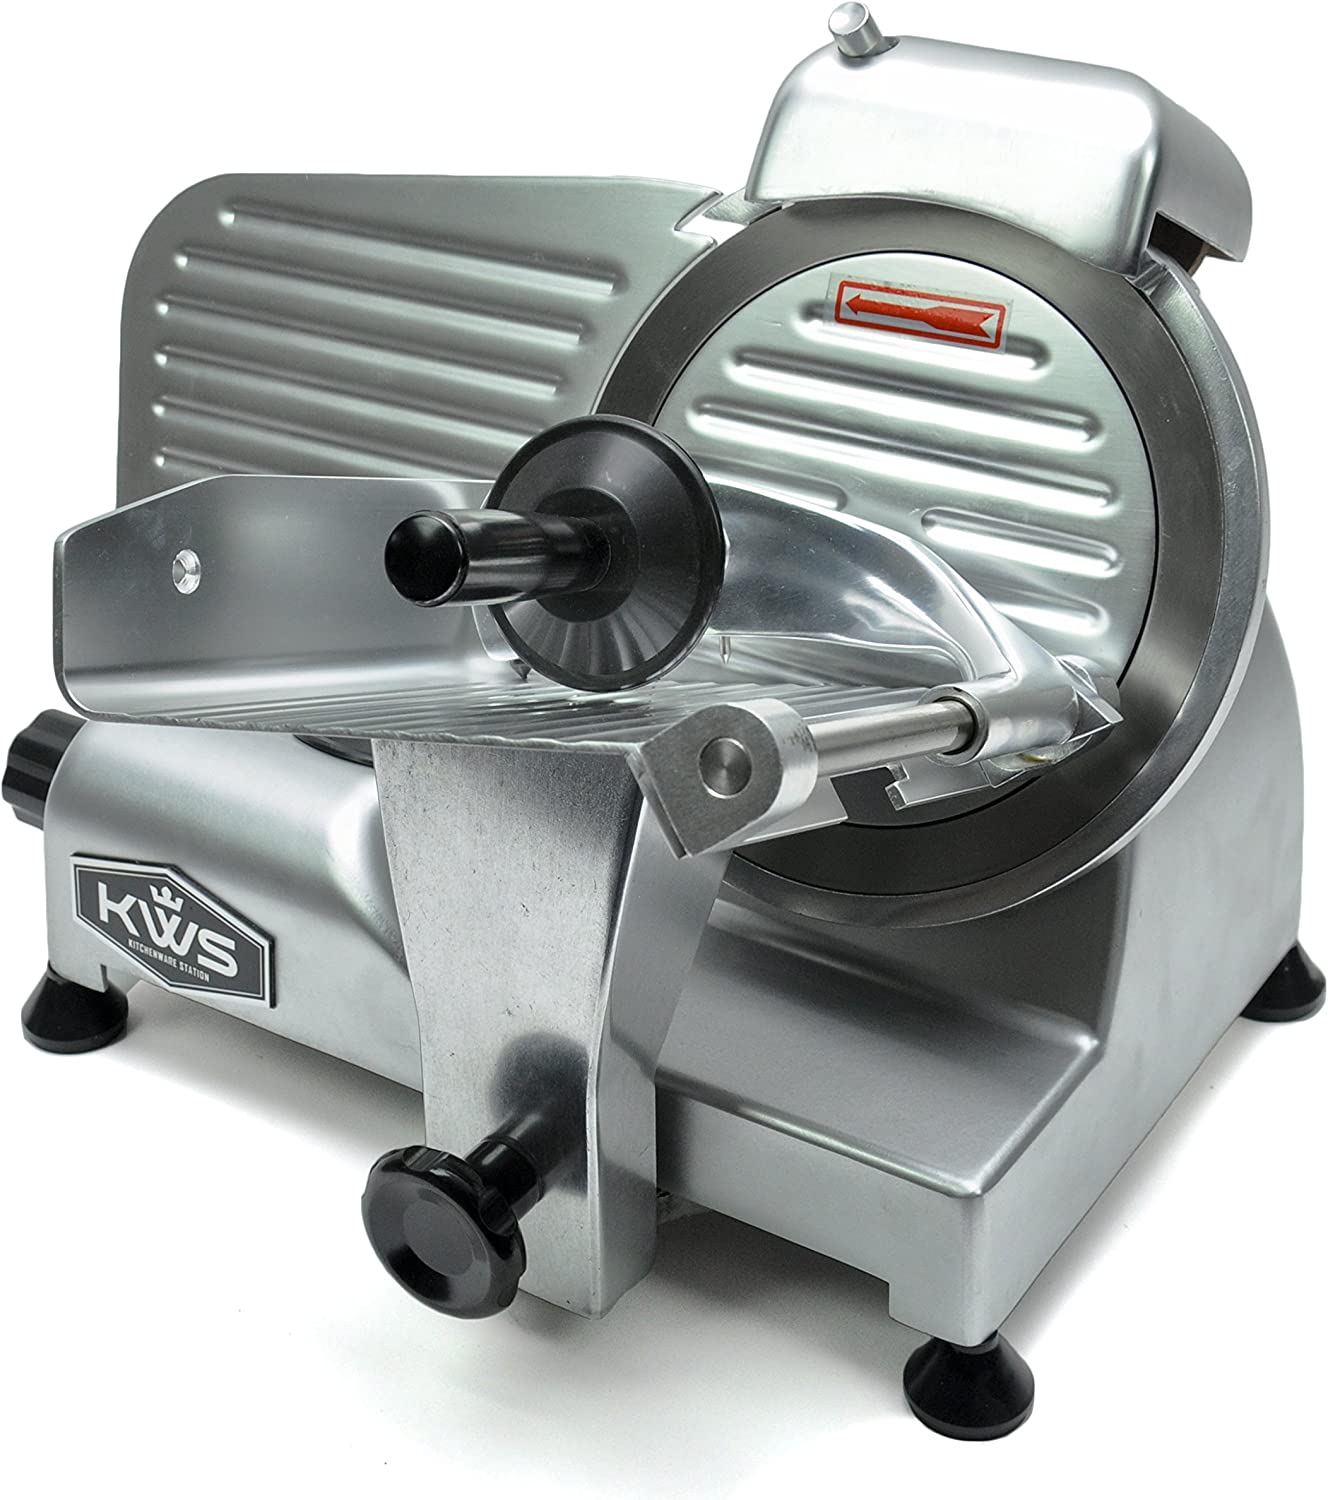 KWS Premium Commercial 200W Electric Meat Slicer 6